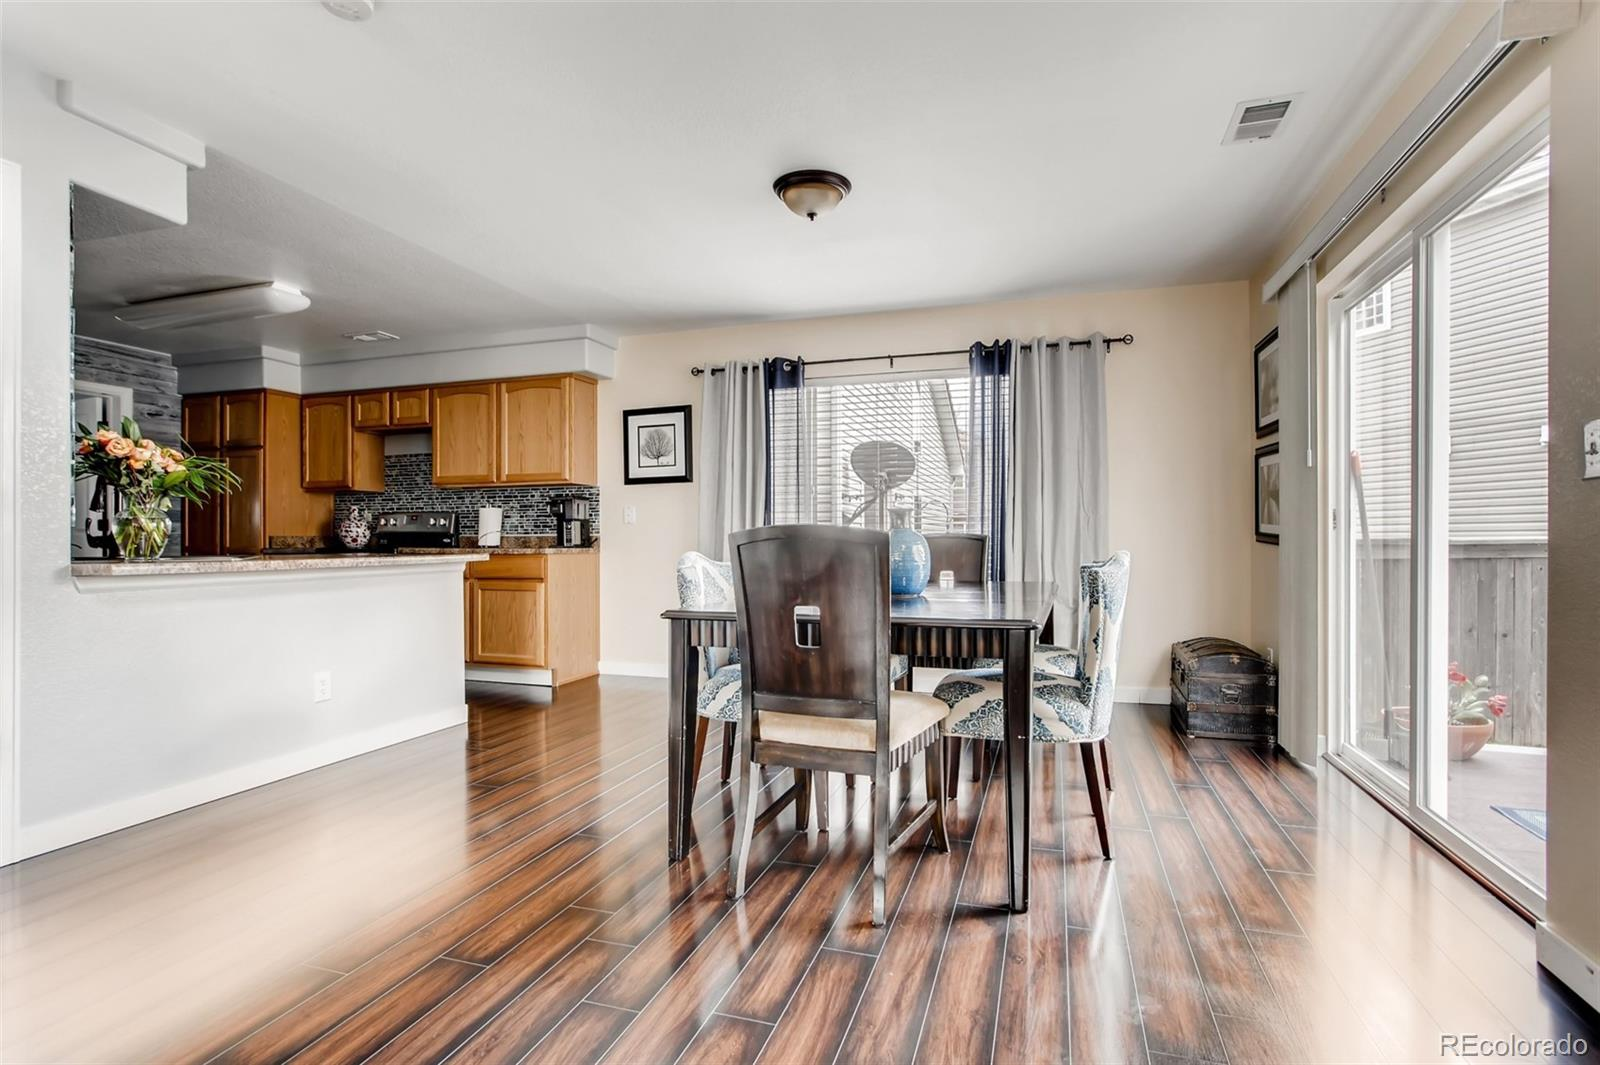 MLS# 3131128 - 5 - 20000 Mitchell Place #64, Denver, CO 80249